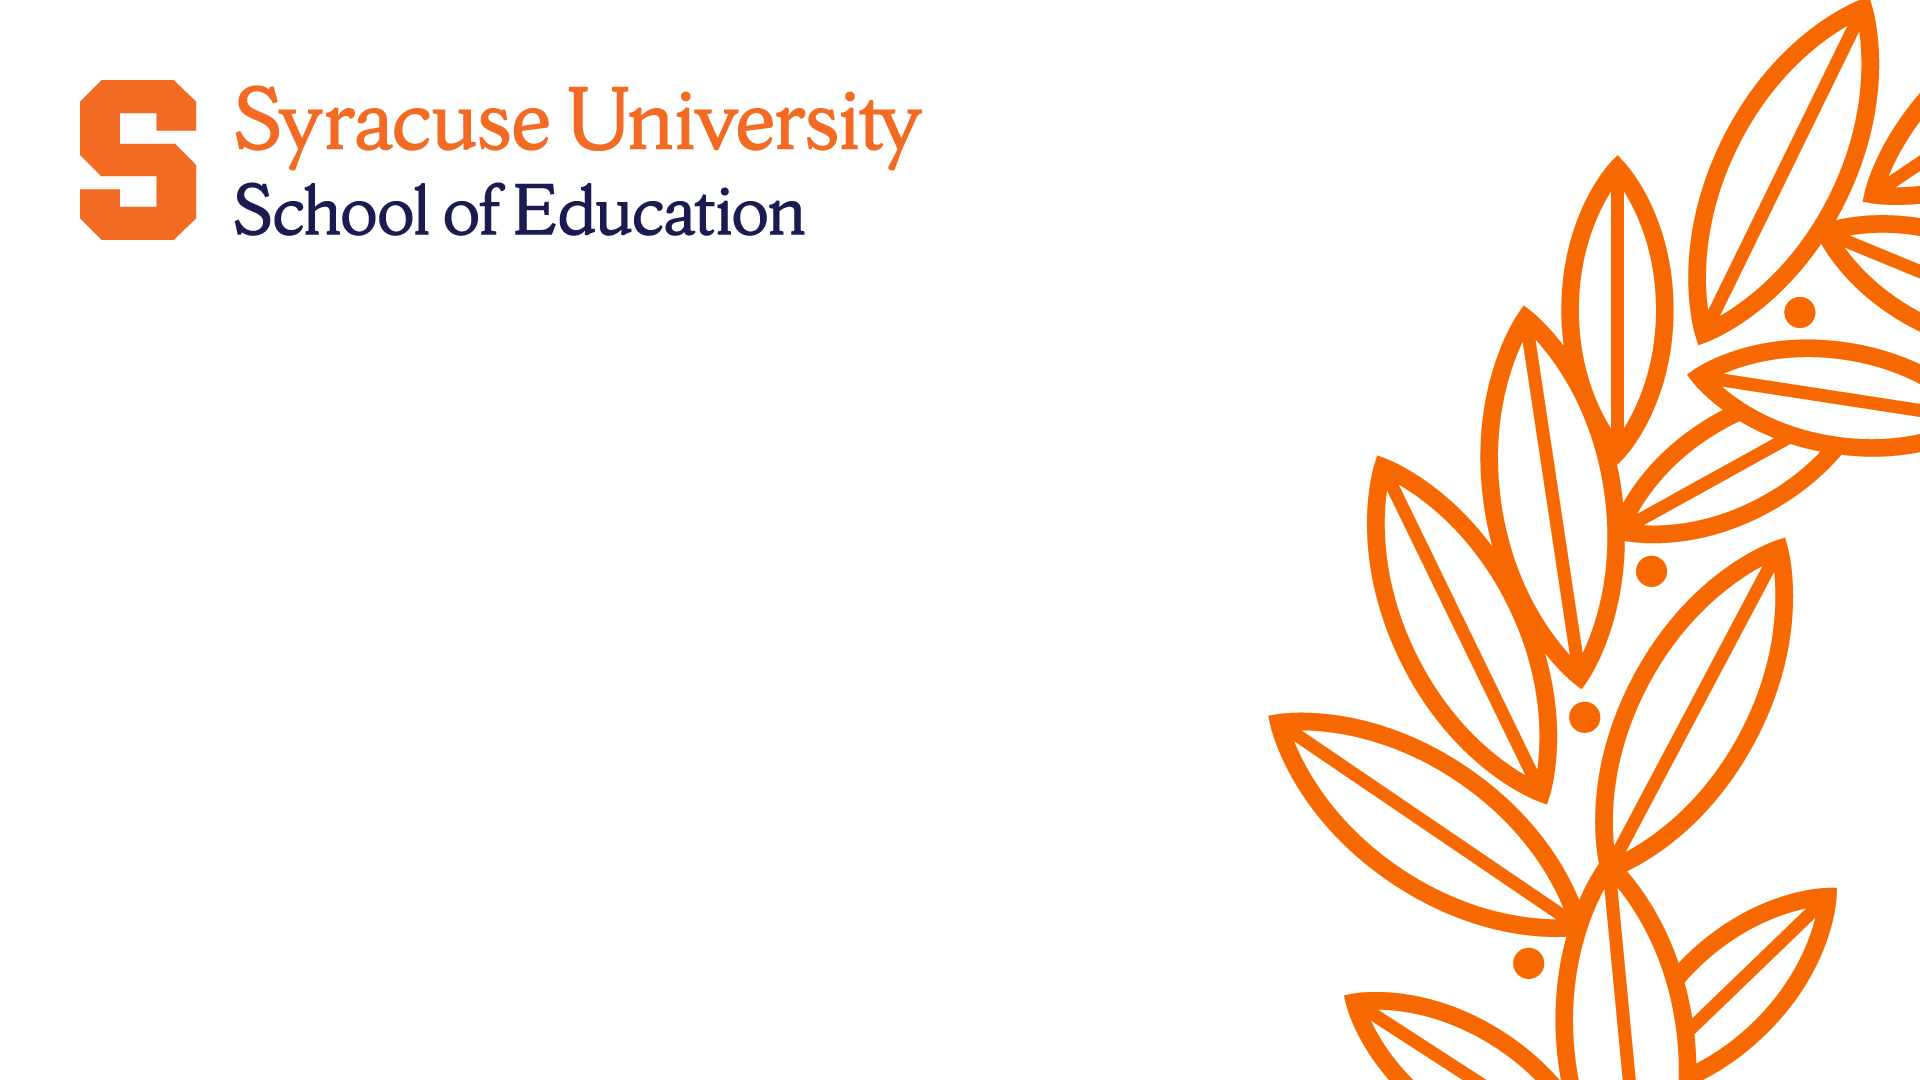 school of education logo and syracuse laurel branch on a white background